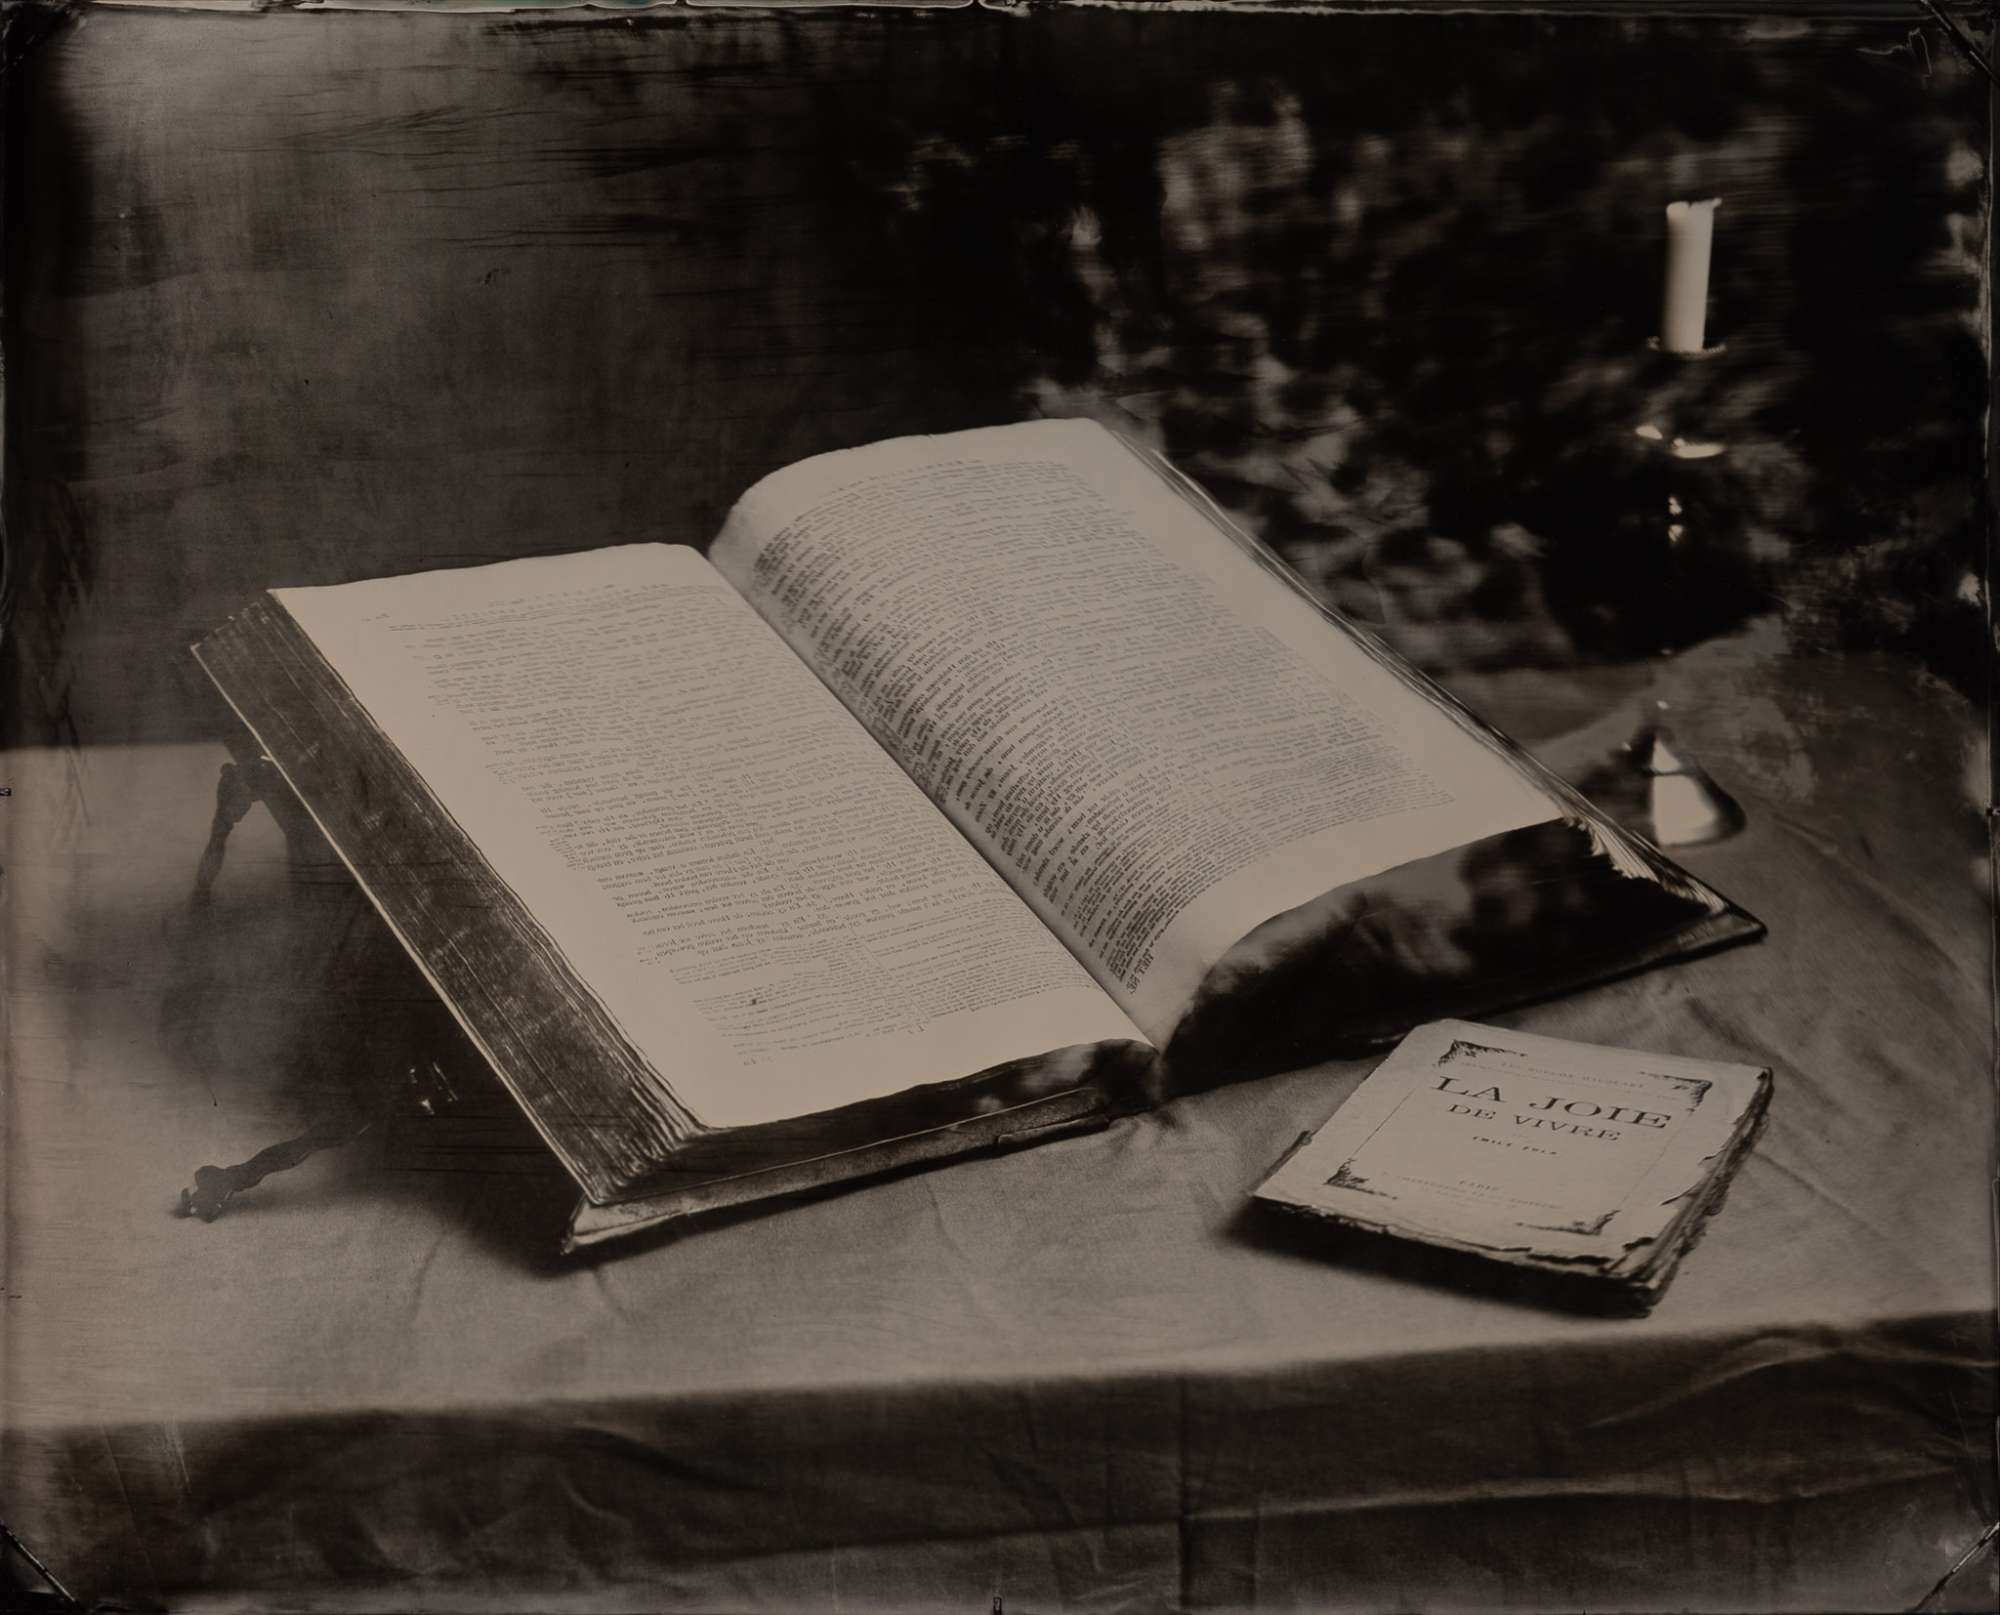 Still Life with Bible, 2020